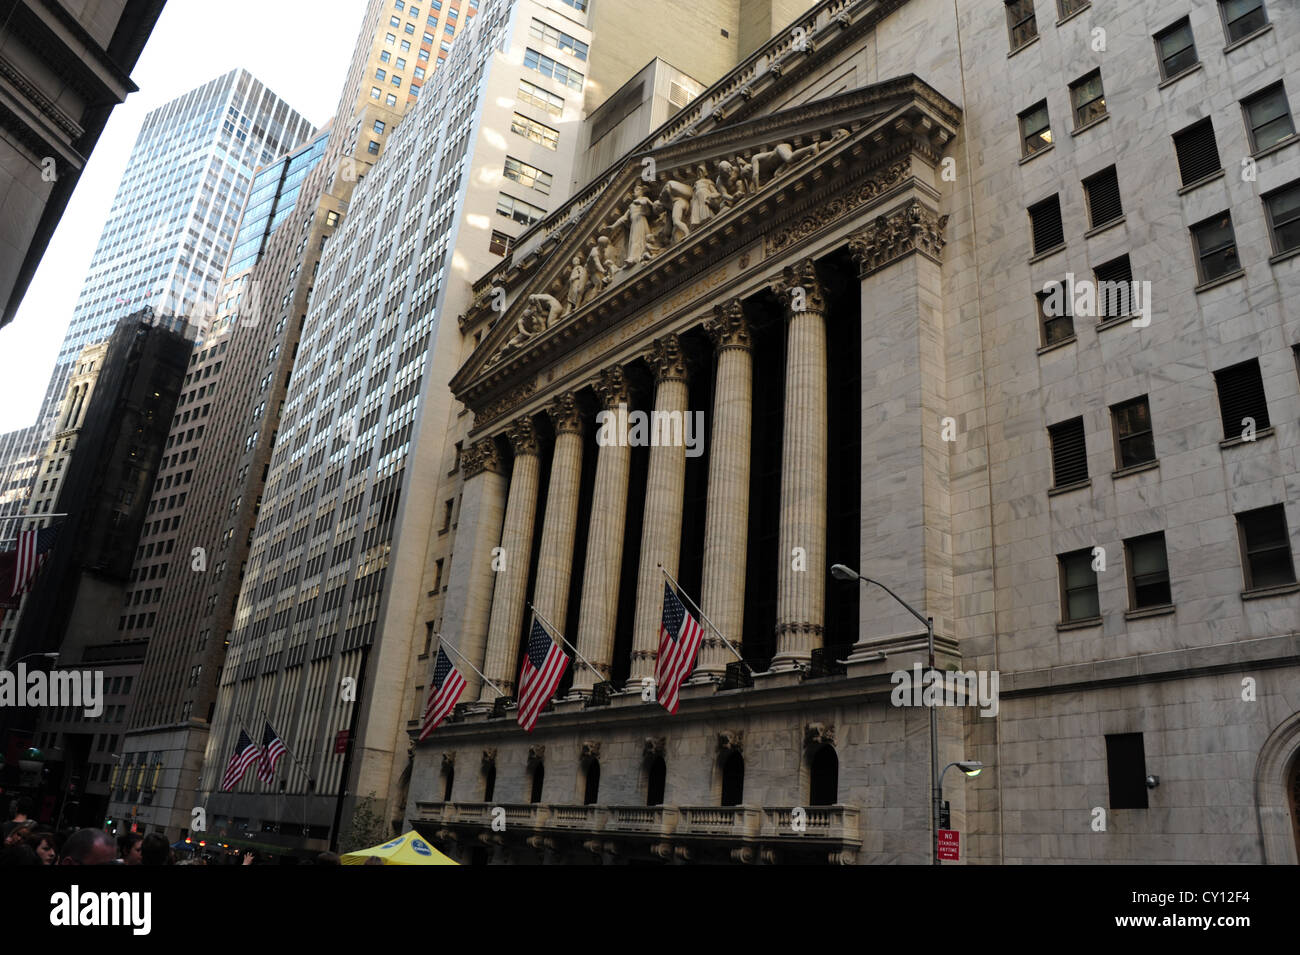 At the fitbit ipo celebration at new york stock exchange on thursday -  Oblique View Neo Classical New York Stock Exchange And Surrounding Skyscrapers Broad Street At